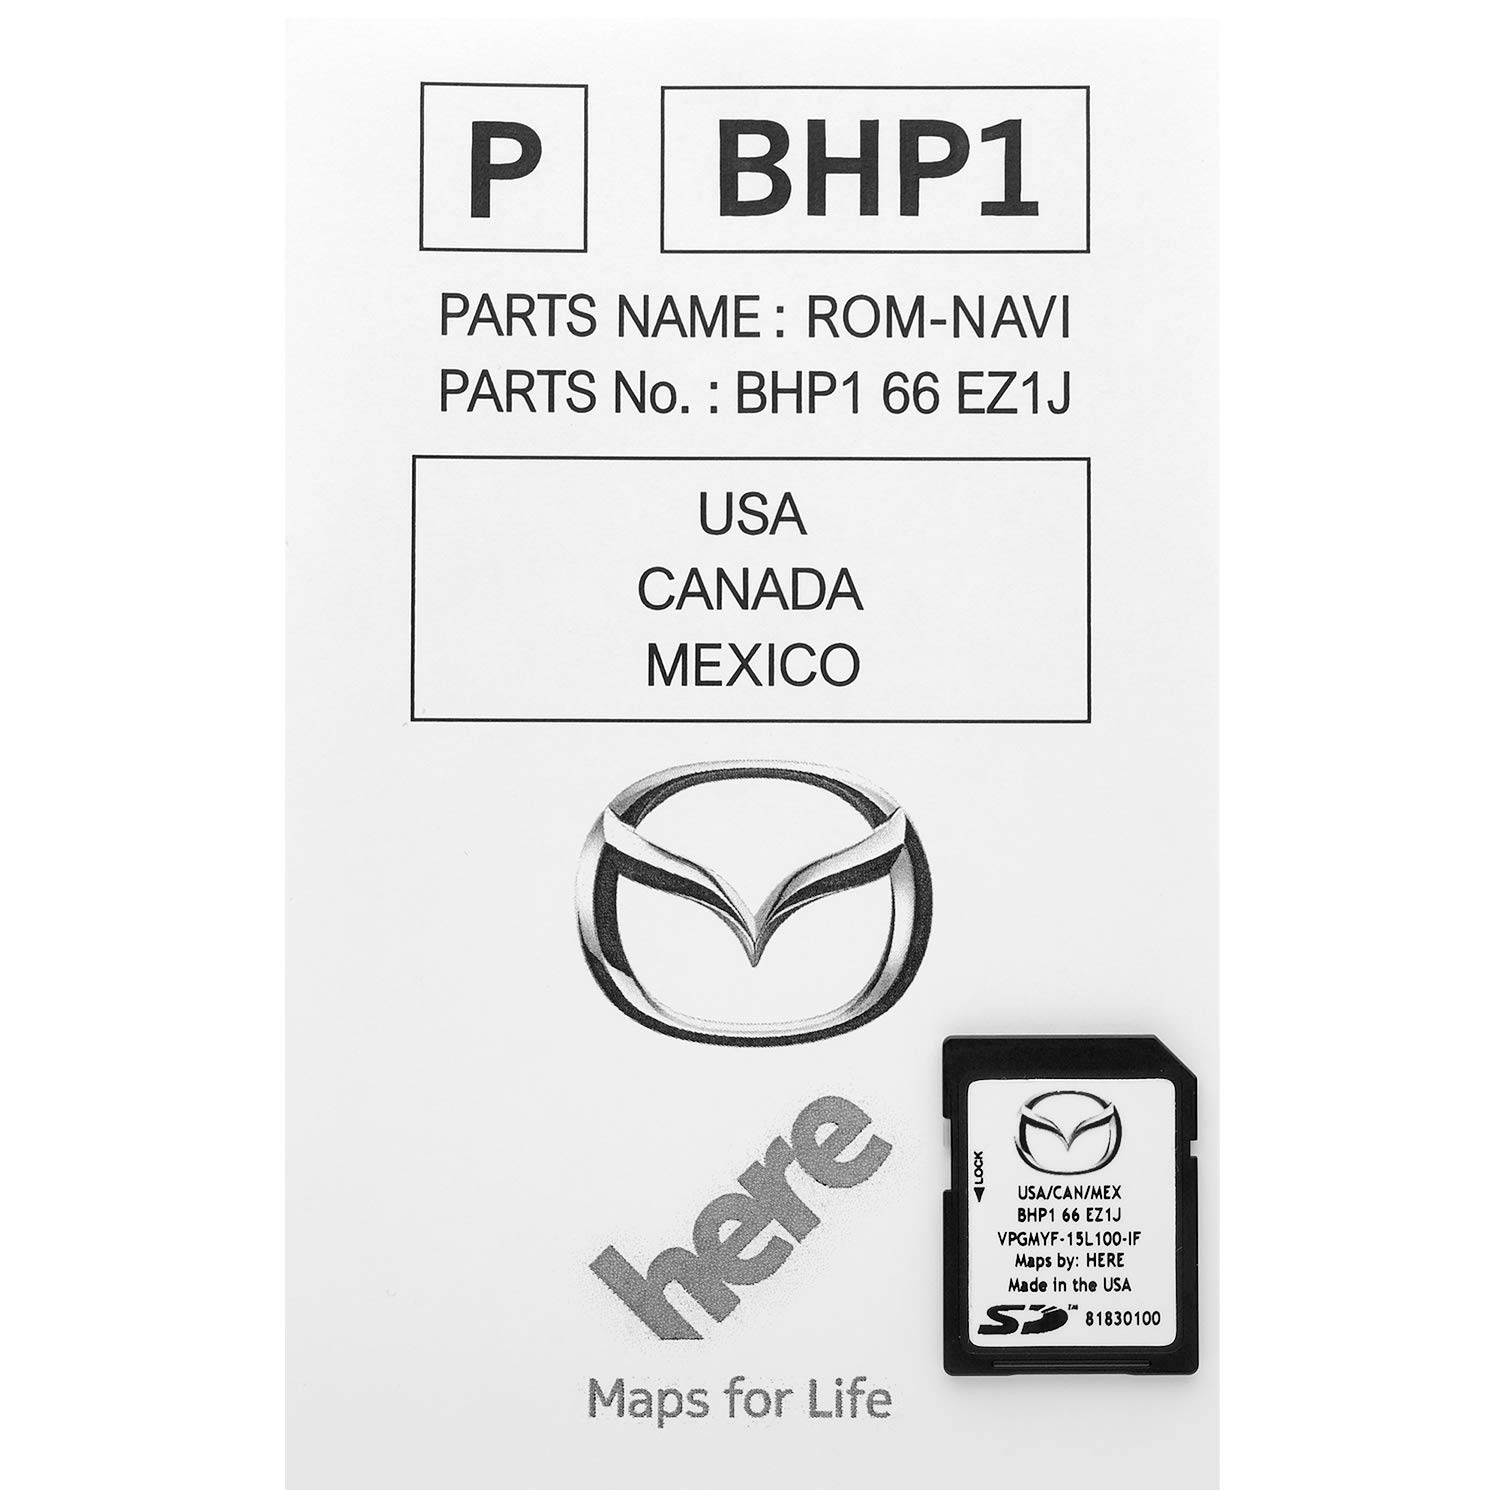 Latest 2019 Navigation SD Card 2019 2018 2017 Version BHP166EZ1J for Mazda 3 6 CX-3 CX-5 CX-9 GPS Chip Map with Anti Fog Car Rearview Mirror Film Pack of 2 and Key Anti-Lost